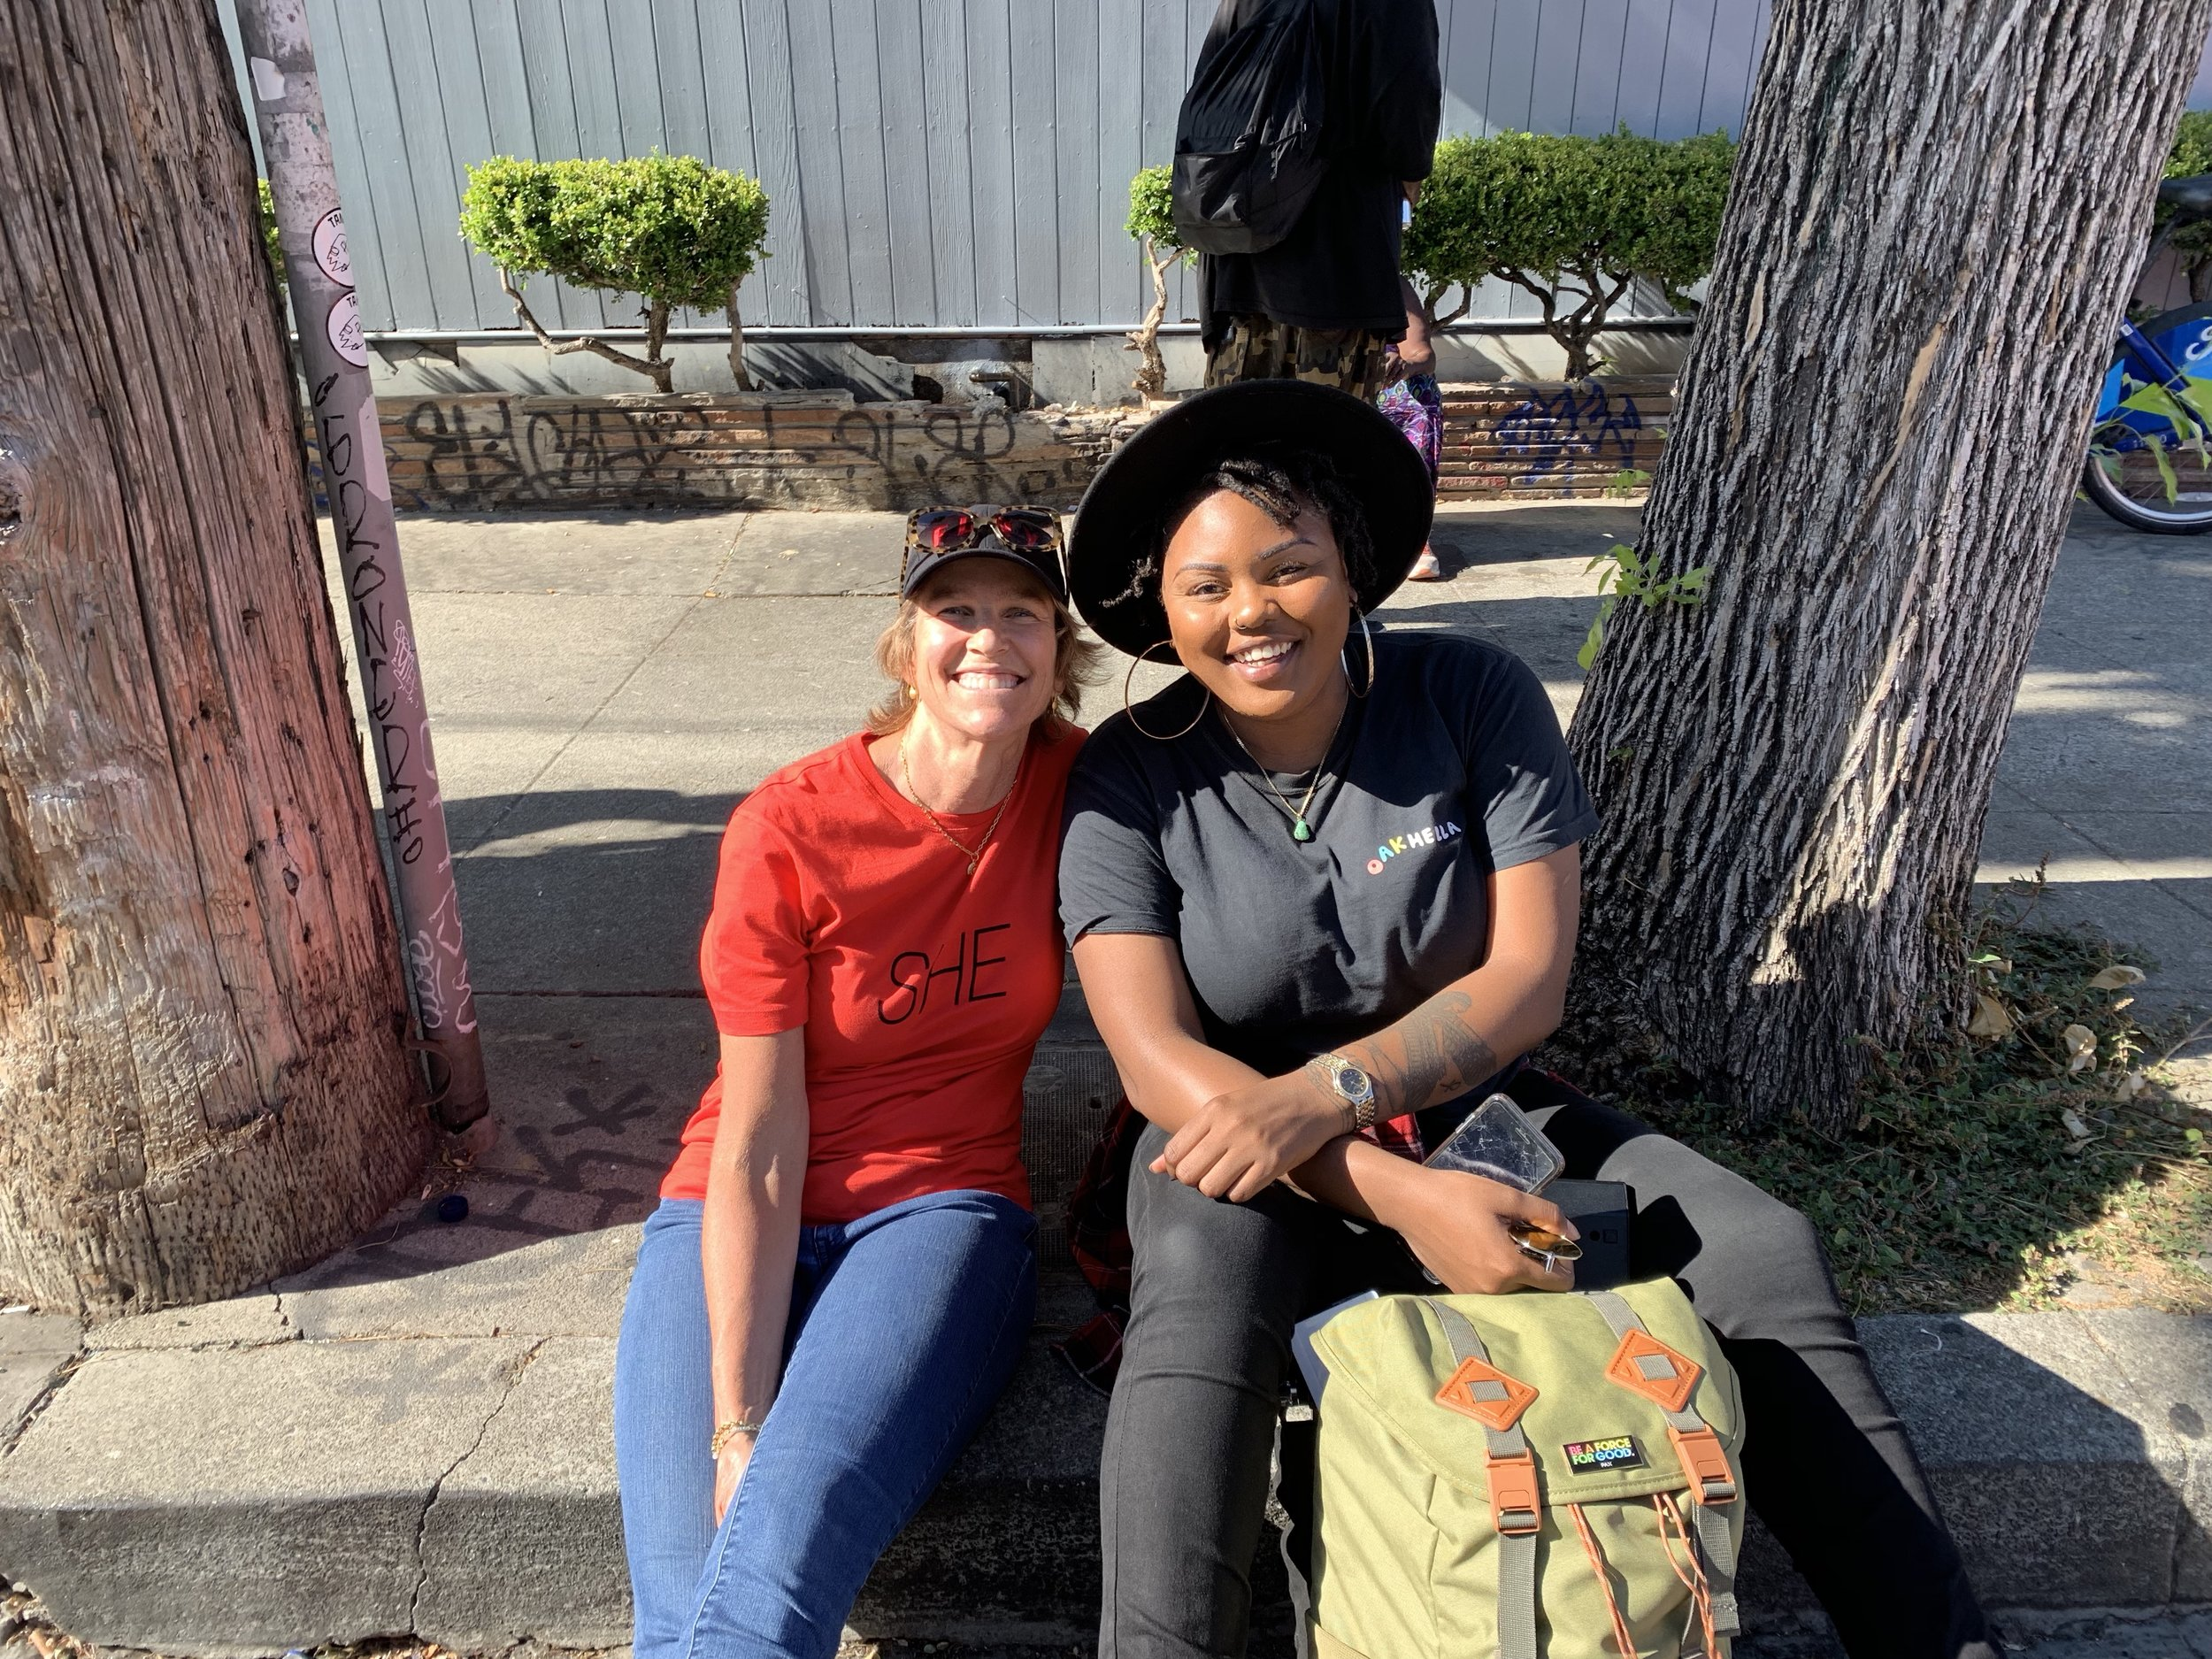 """That's me with Bijou, otherwise known as DJ Kream (founder of Oakhella). LOVE all these female creatives coming together for First Fridays July event, themed """"Art is Women"""". PS - I found that """"SHE"""" shirt in my closet, and it's our FURY colors to boot. Good juju."""